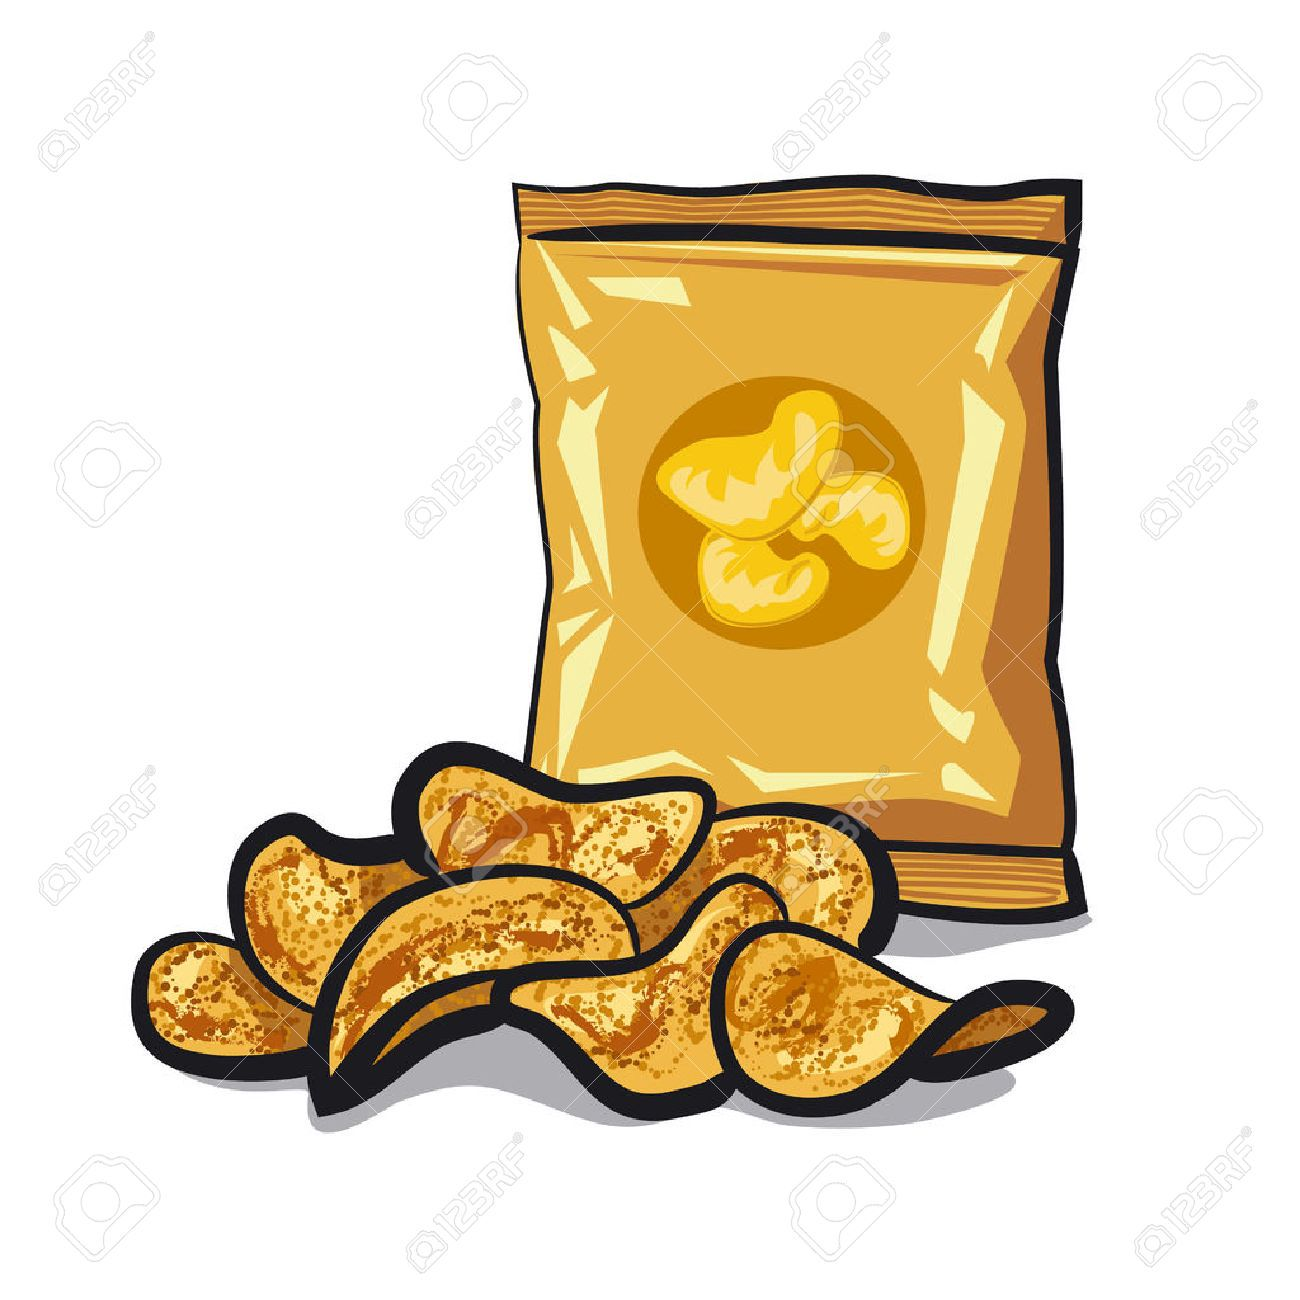 Image result for chips clipart.